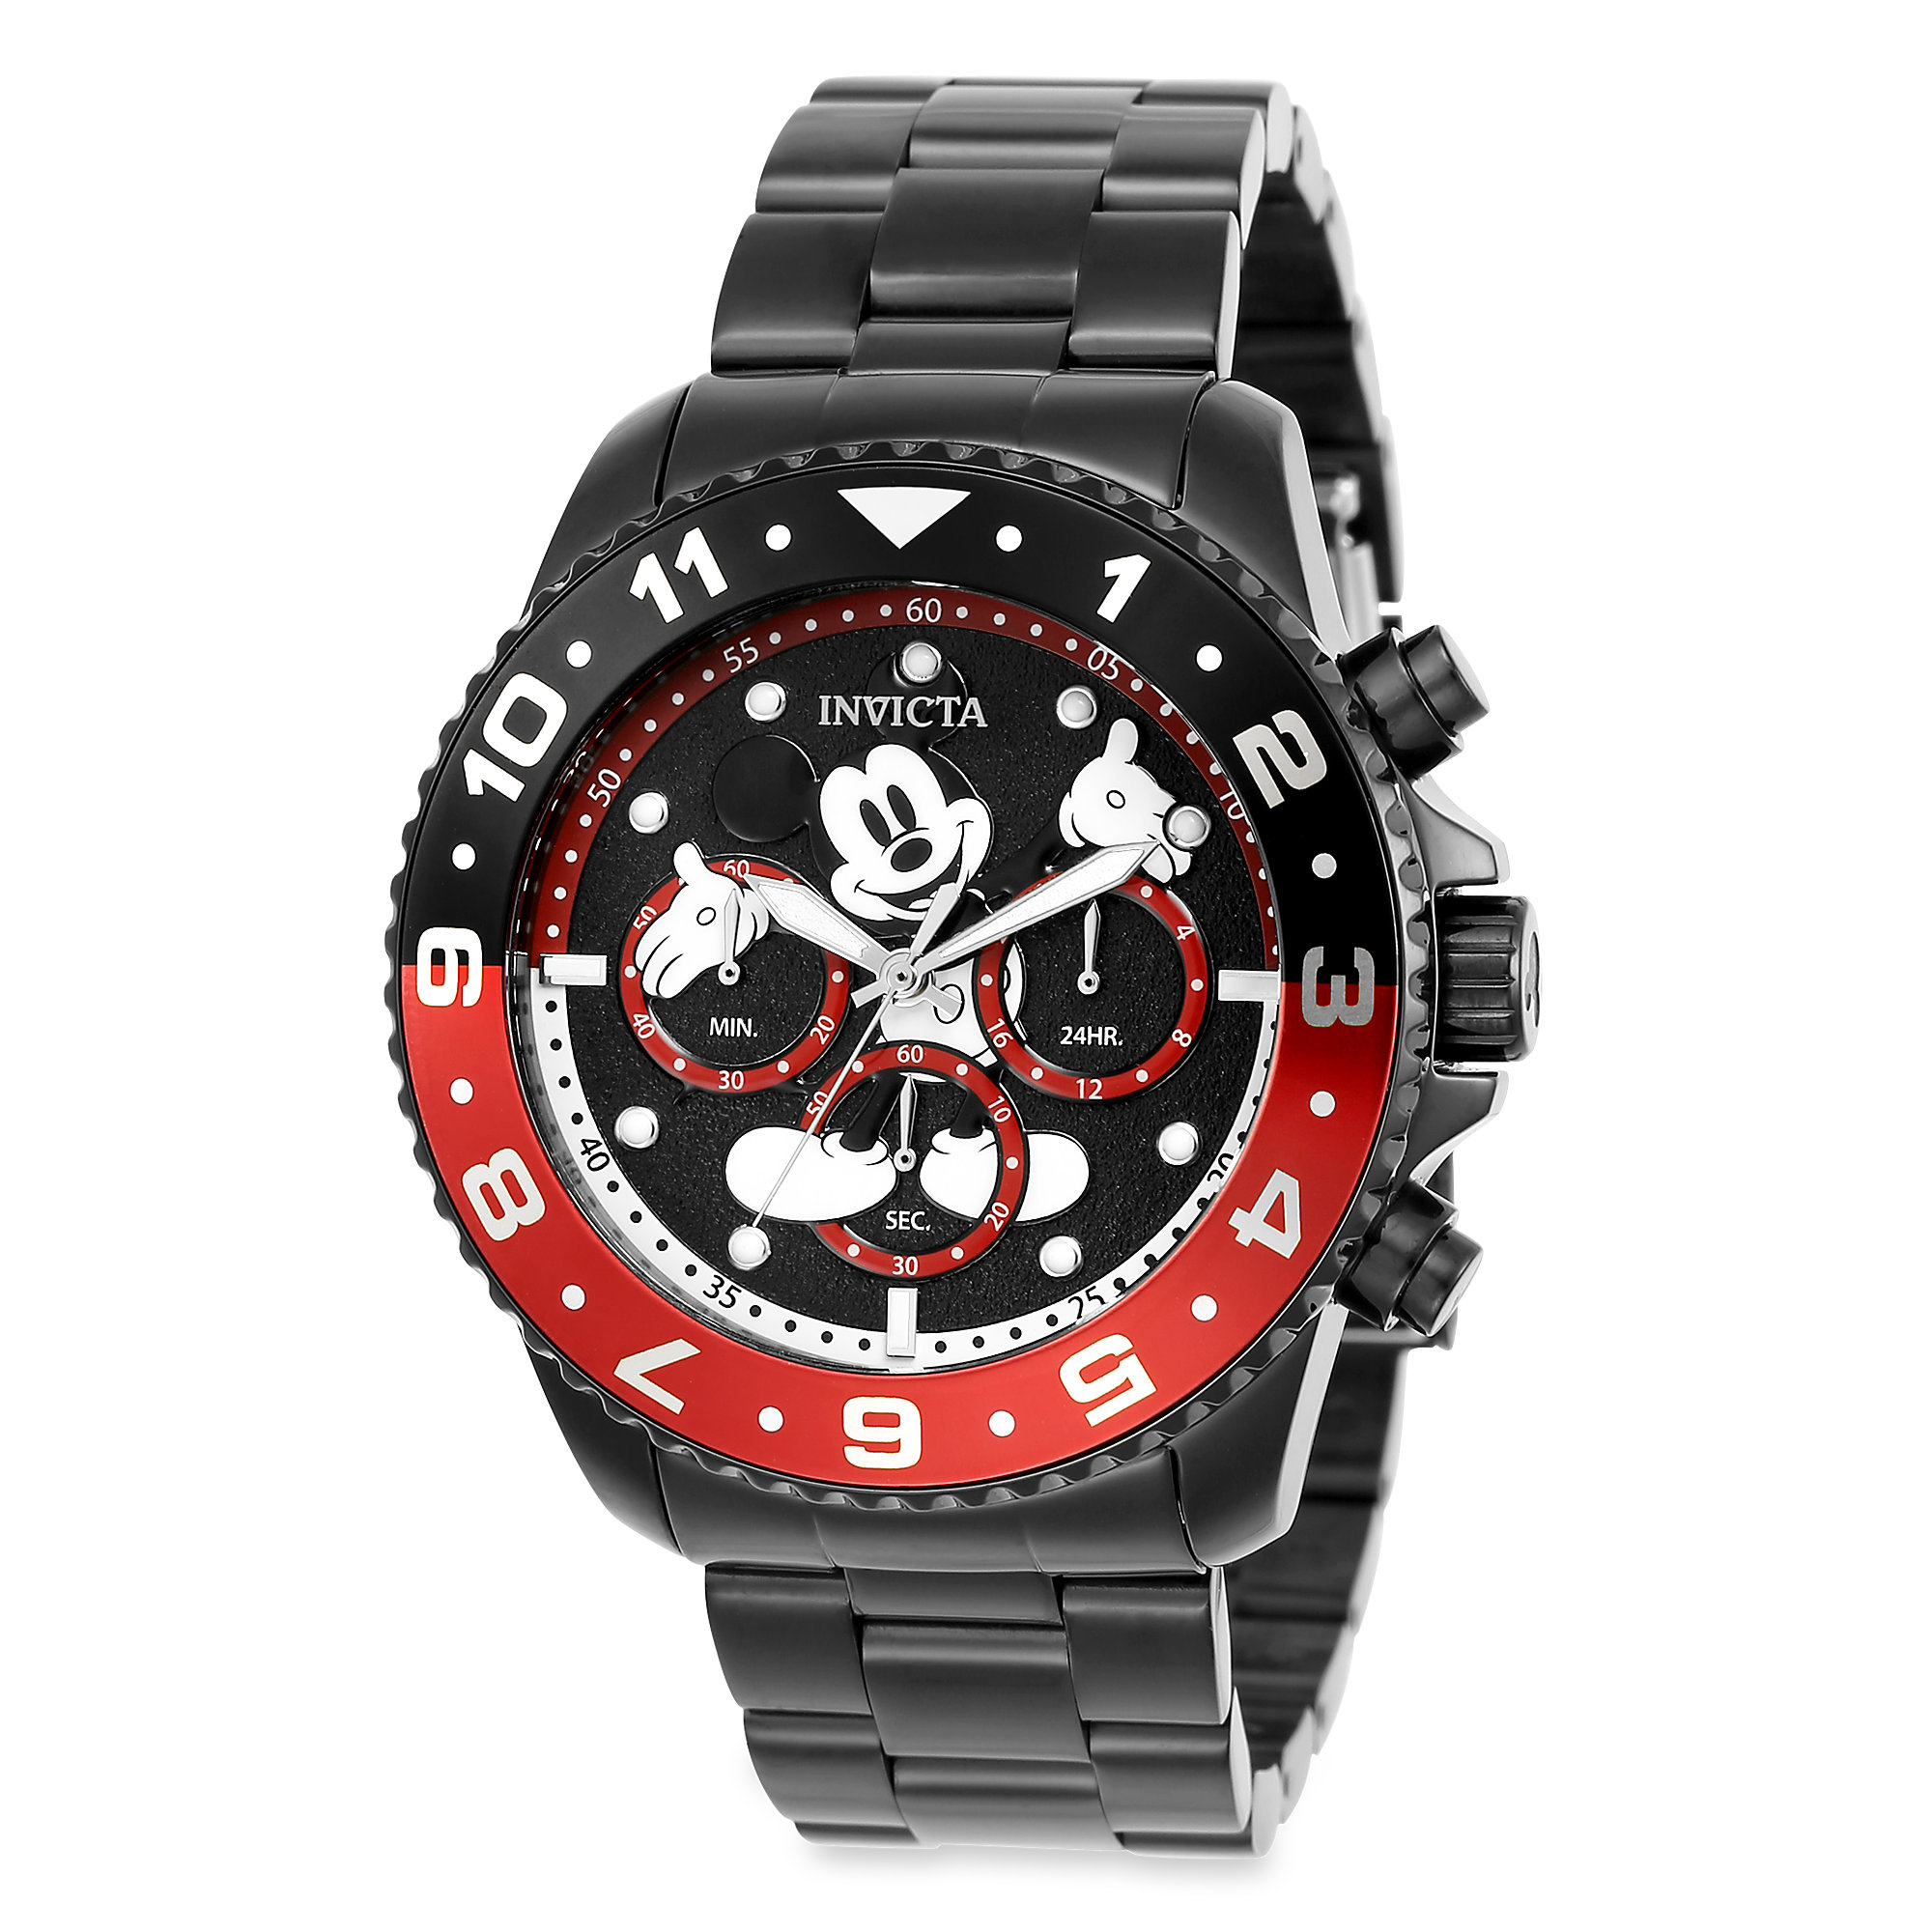 Mickey Mouse Chronograph for Men by INVICTA - Limited Edition